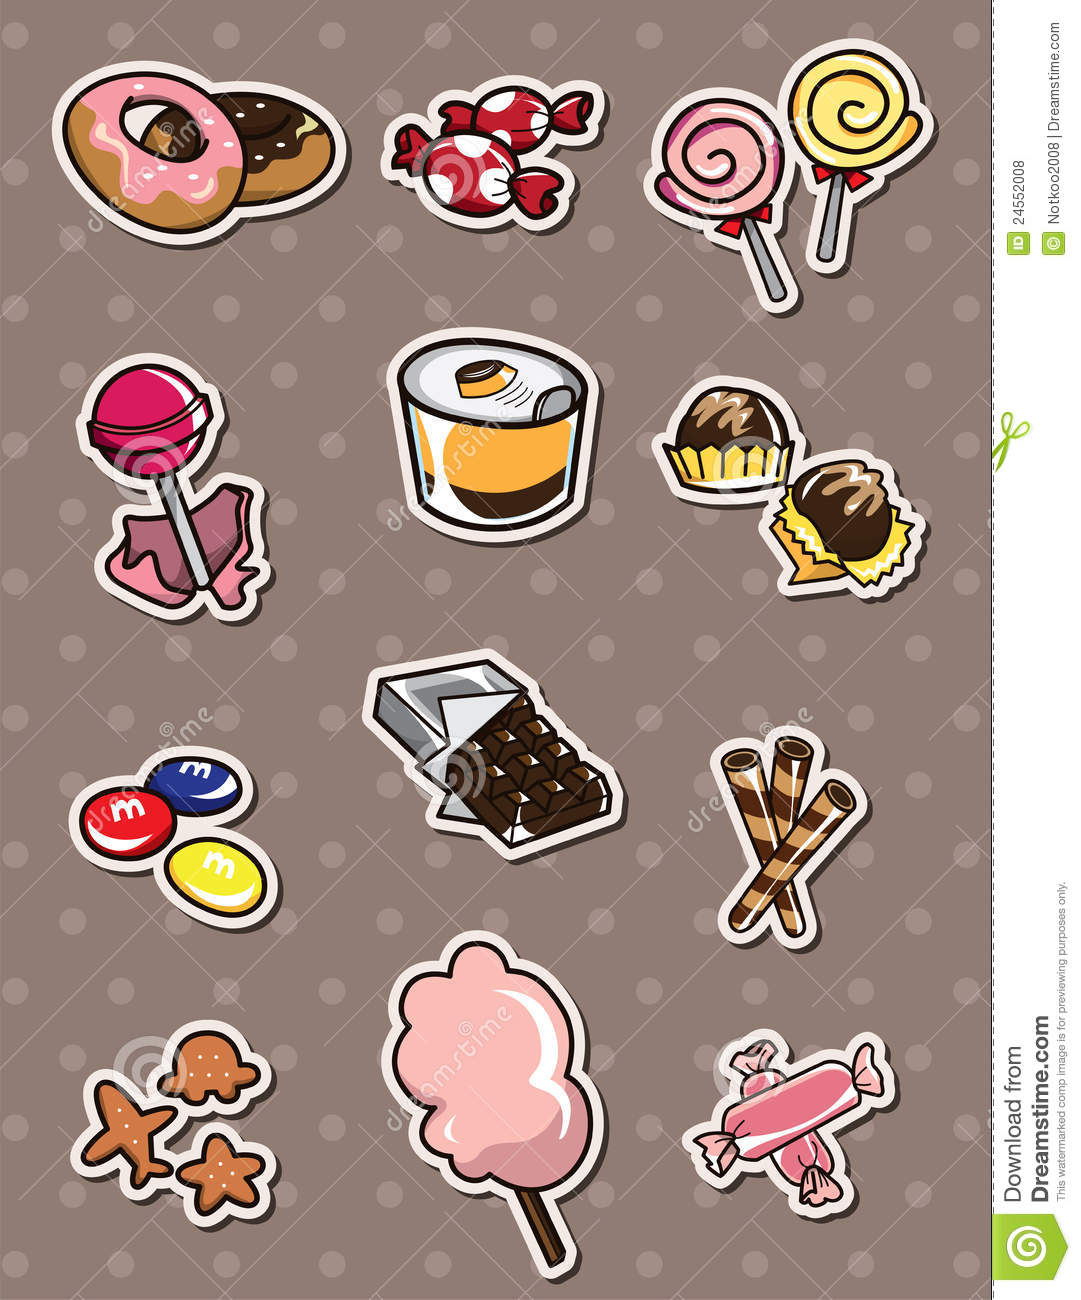 Lizenzfreies Stockfoto Weicher Erdbeereis Im Kegel Mit Schokolade Image38915235 in addition Cartoon Fast Food Icon 70979923 furthermore 5 Pen Ink Techniques Know moreover 157416d5 39b4 4825 9d56 5b7b6a6c18d7 together with Diy Unicorn Easter Eggs Tutorial. on how to draw an ice cream sandwich